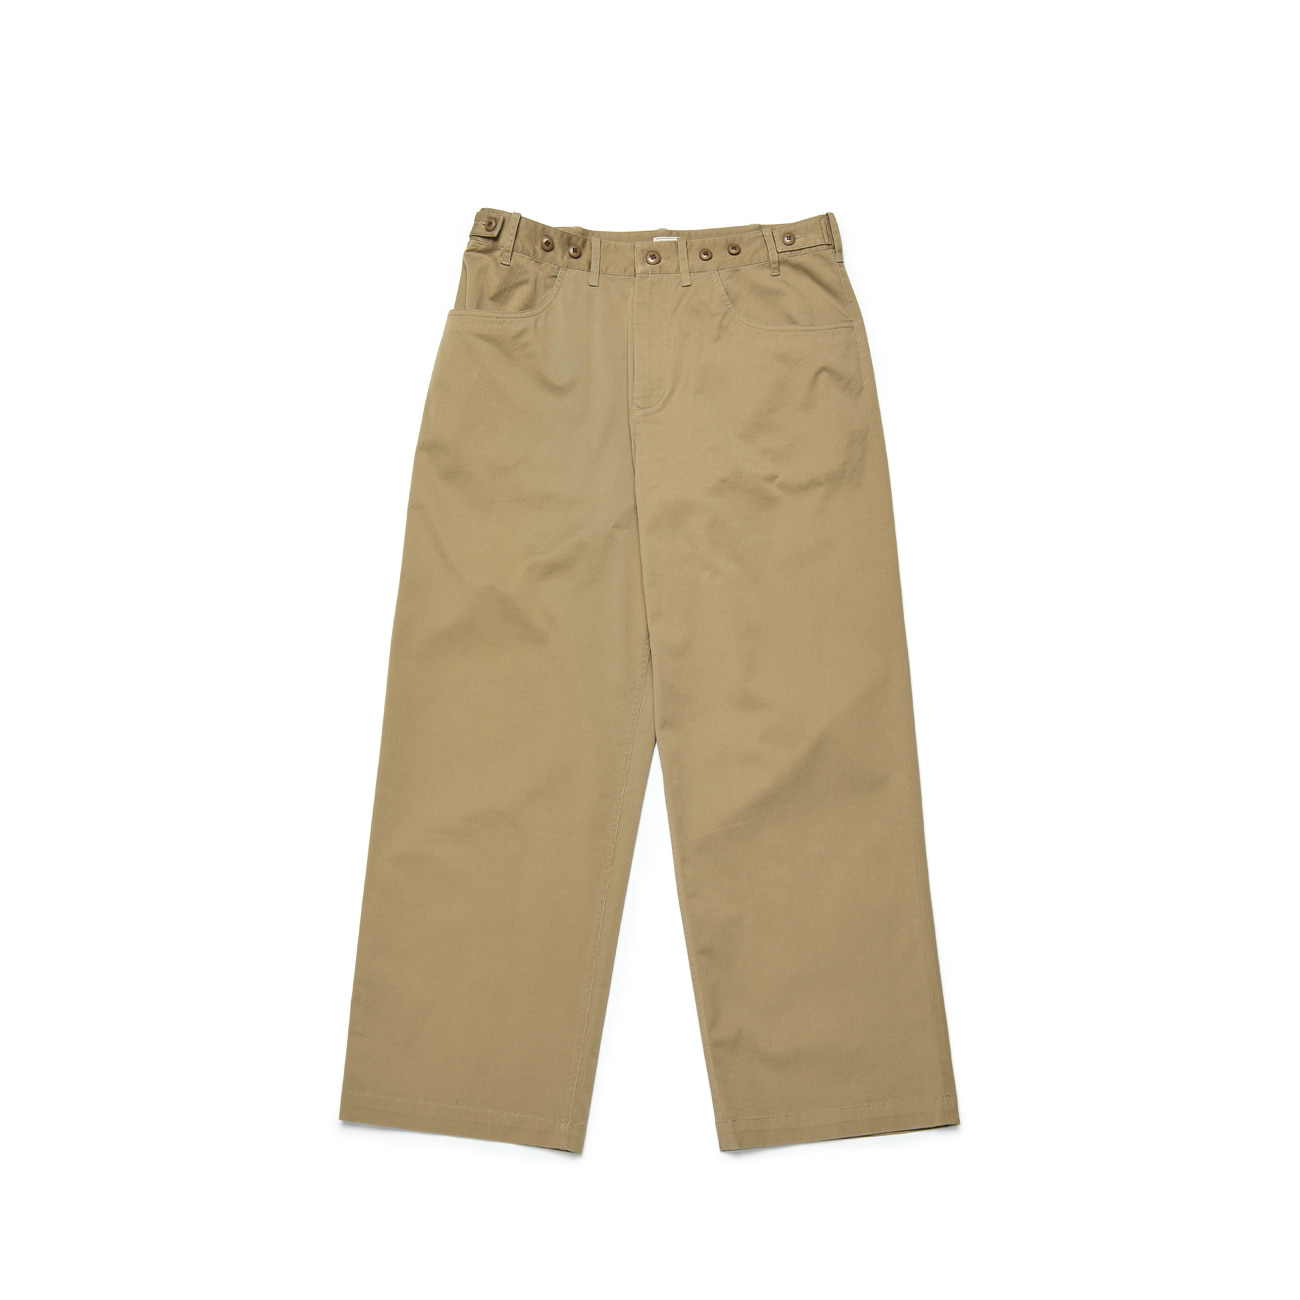 All-Need Pants Beige